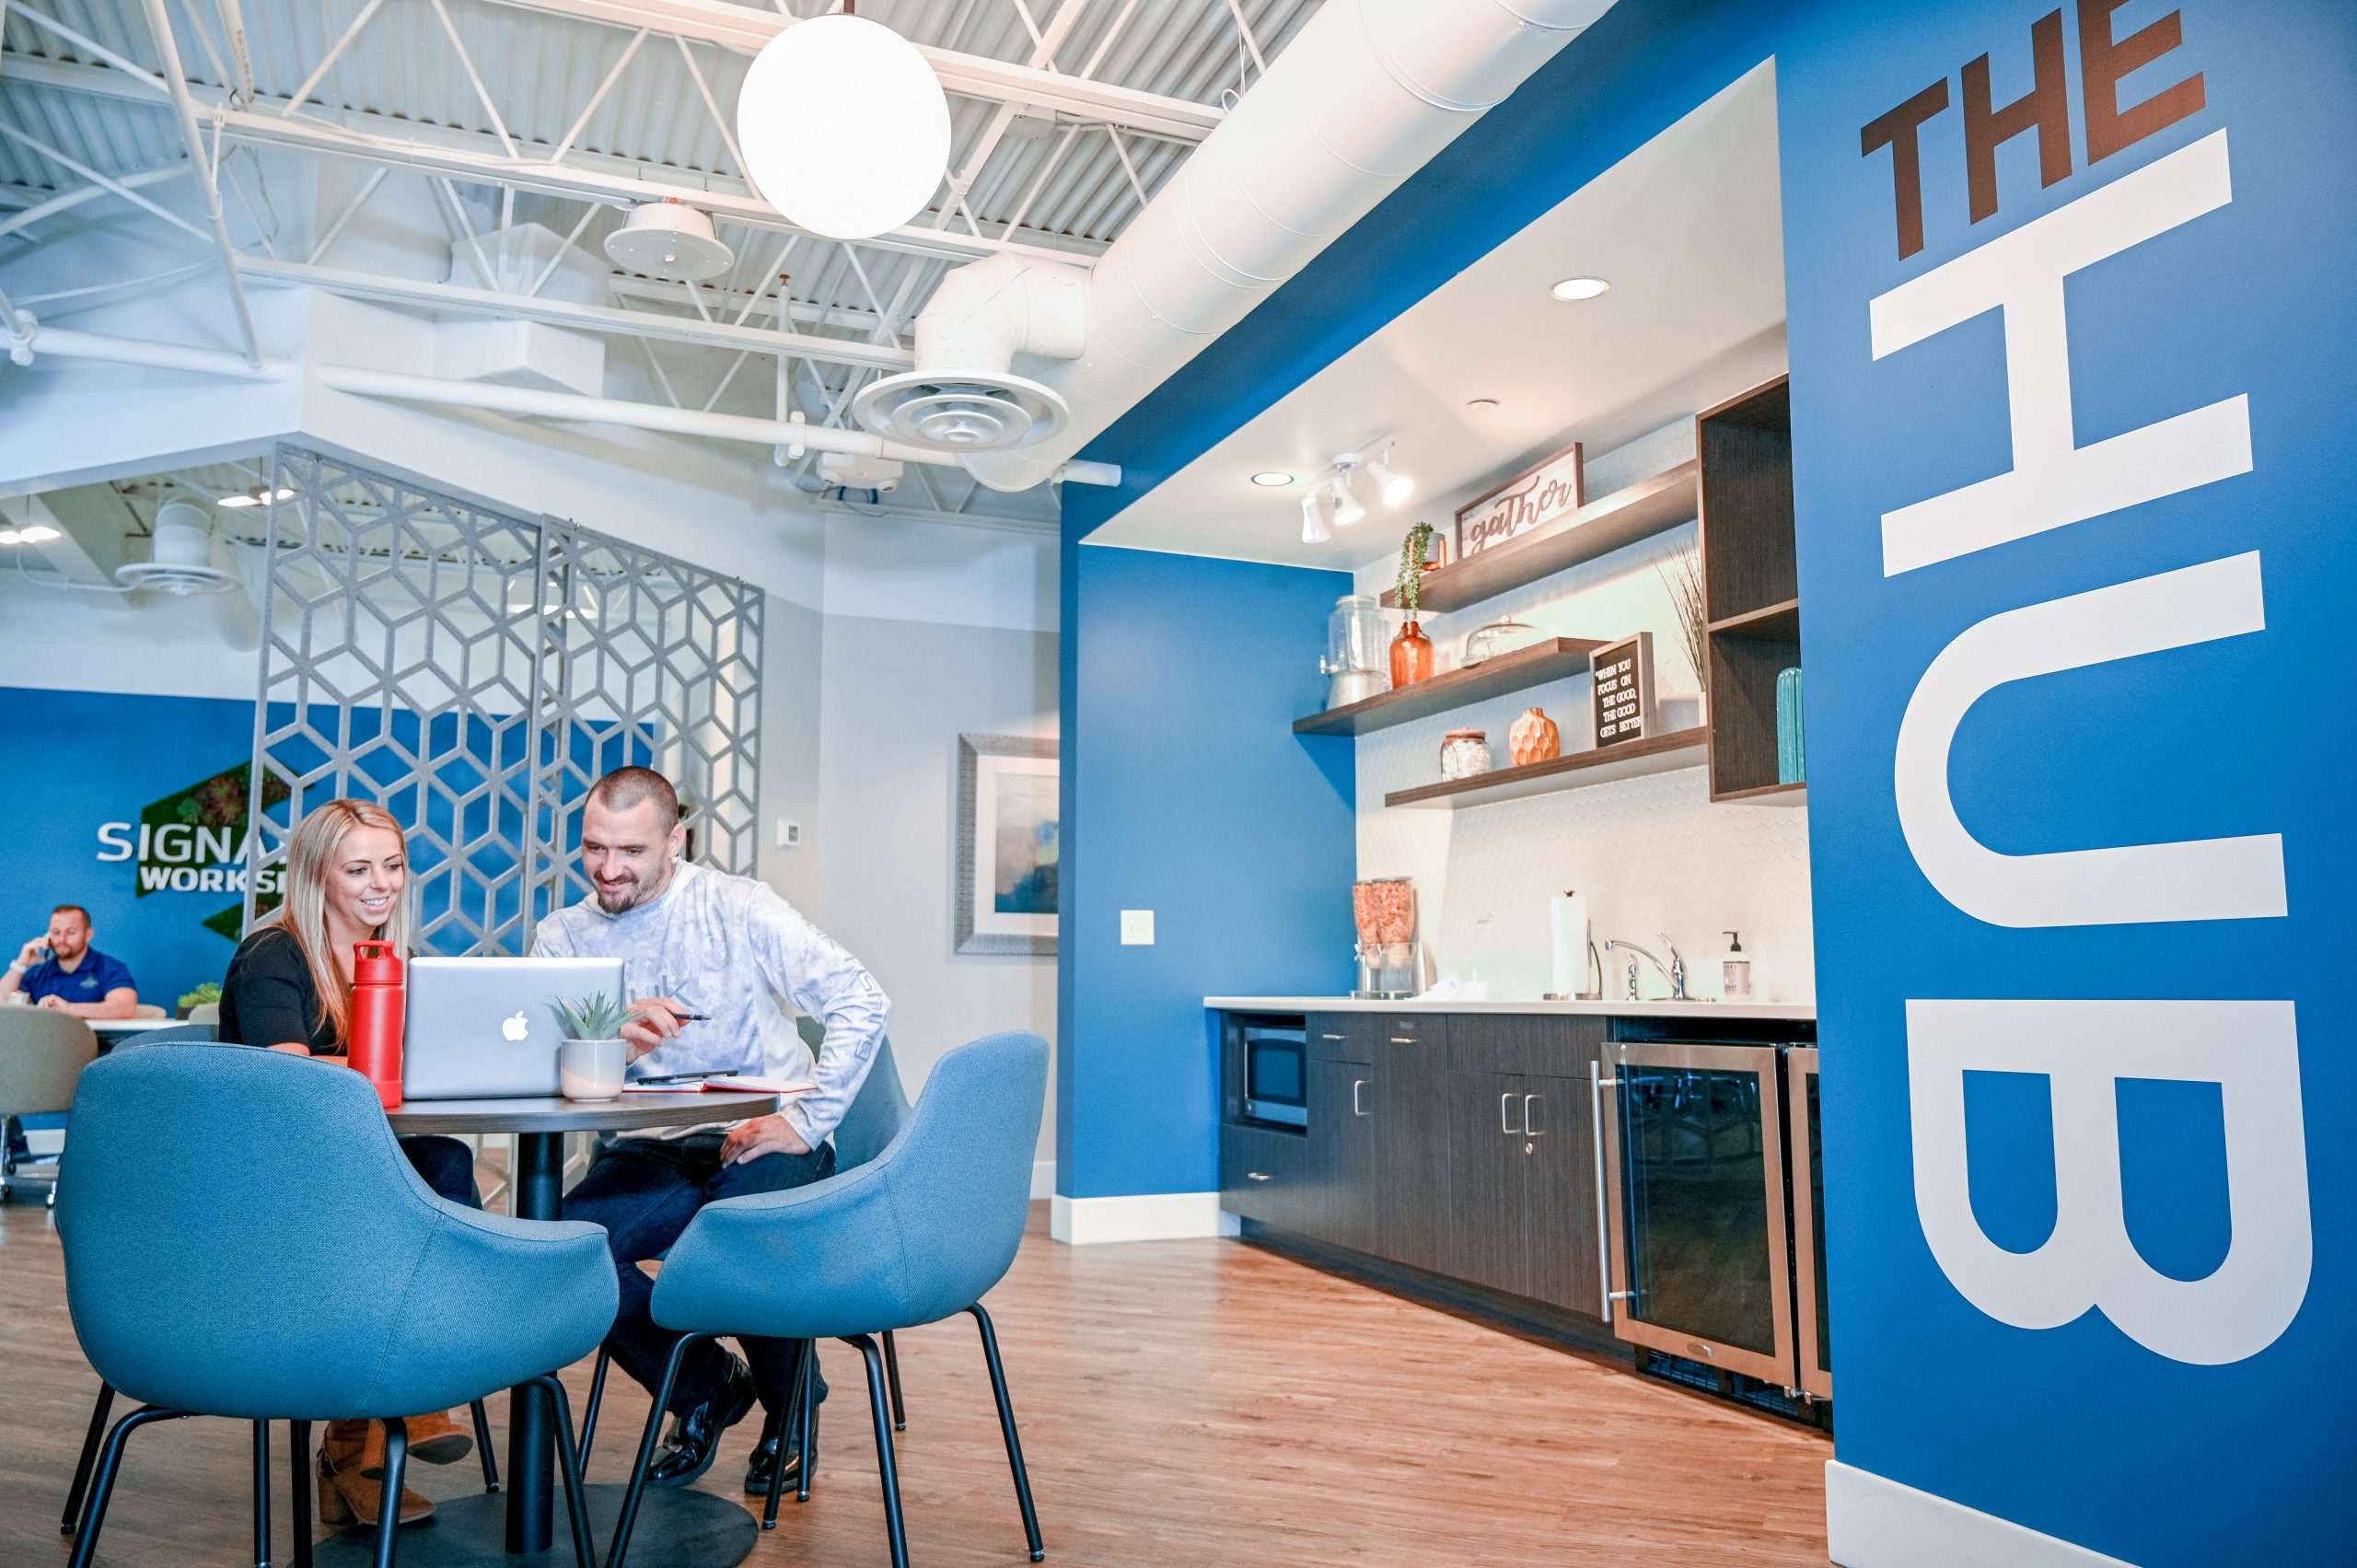 'New Normal' for Co-working Spaces in 2021